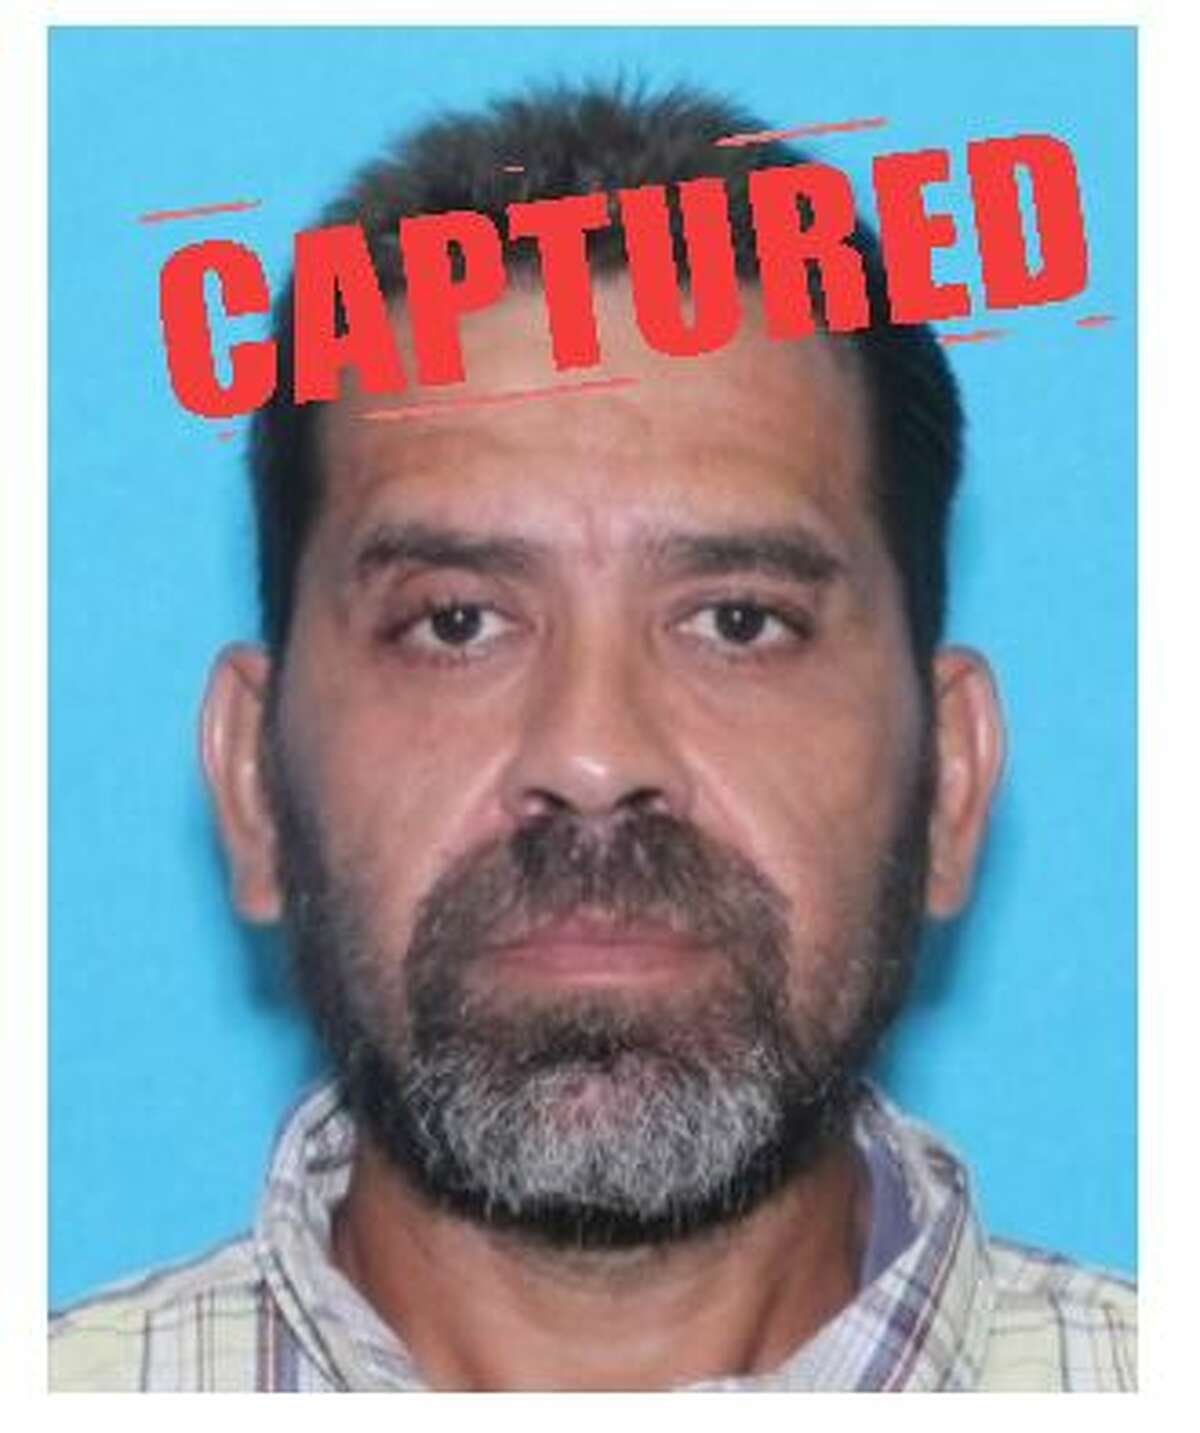 The Texas Department of Public Safety on Monday announced the arrest of45-year-old Erasmo Zapata of Corpus Christi.